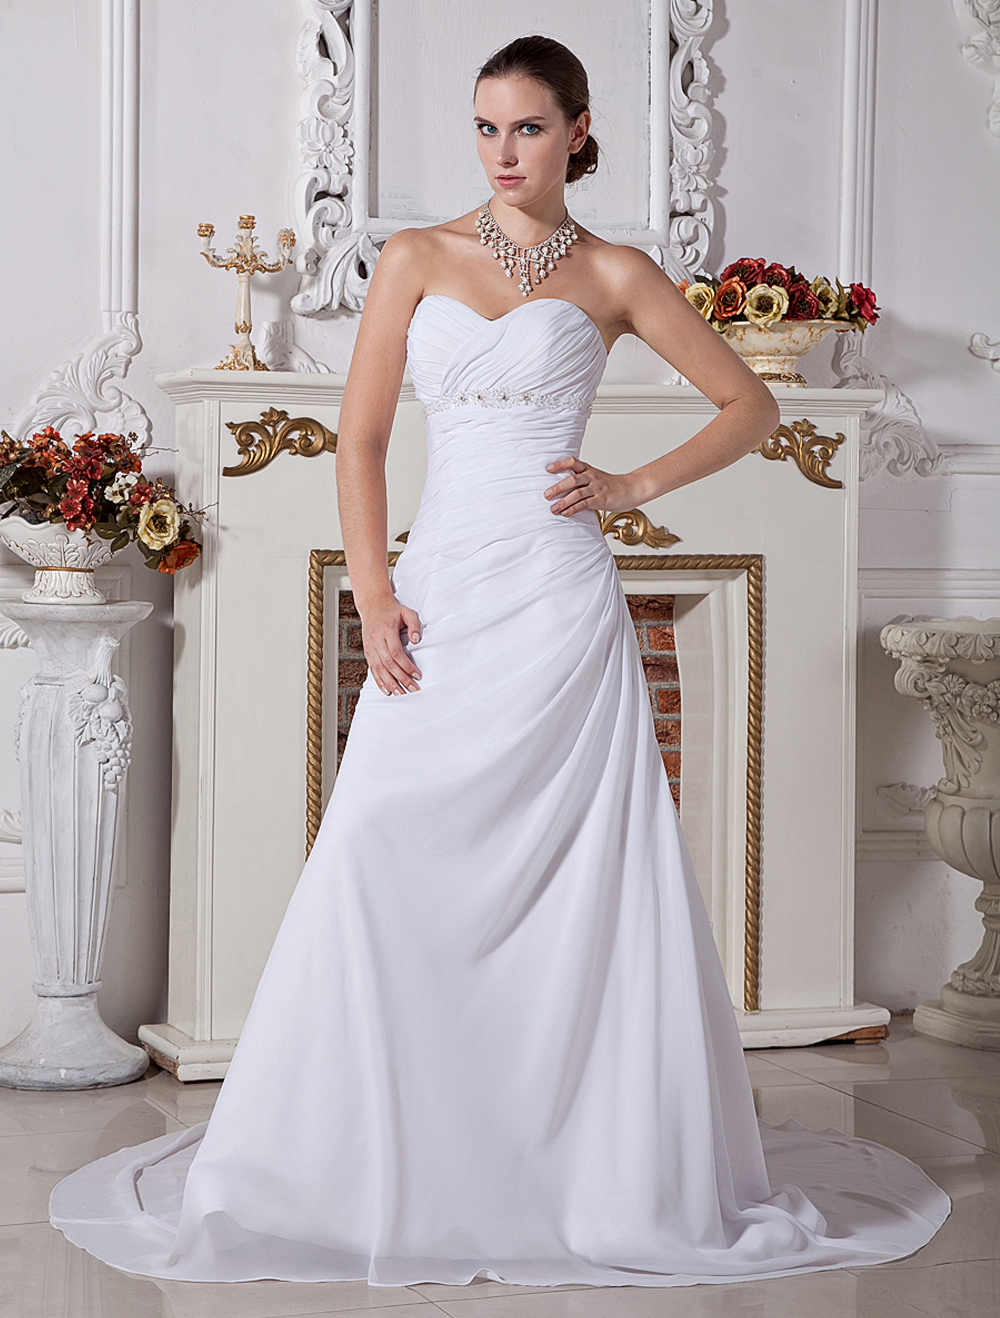 Elegant Strapless Sweetheart Satin Chiffon Wedding Dress